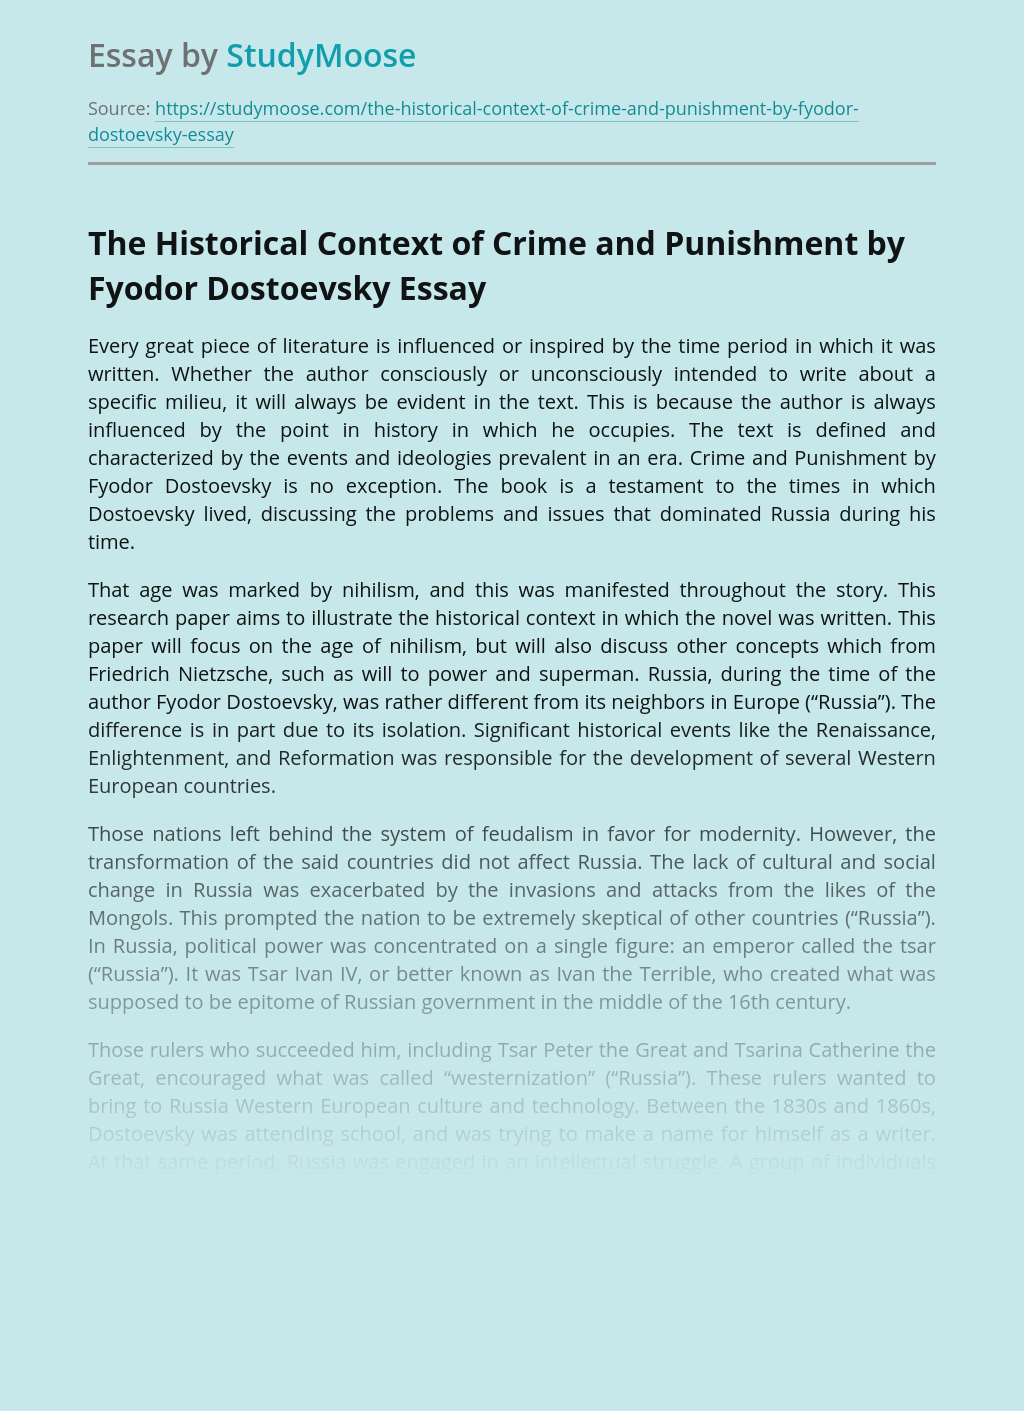 The Historical Context of Crime and Punishment by Fyodor Dostoevsky